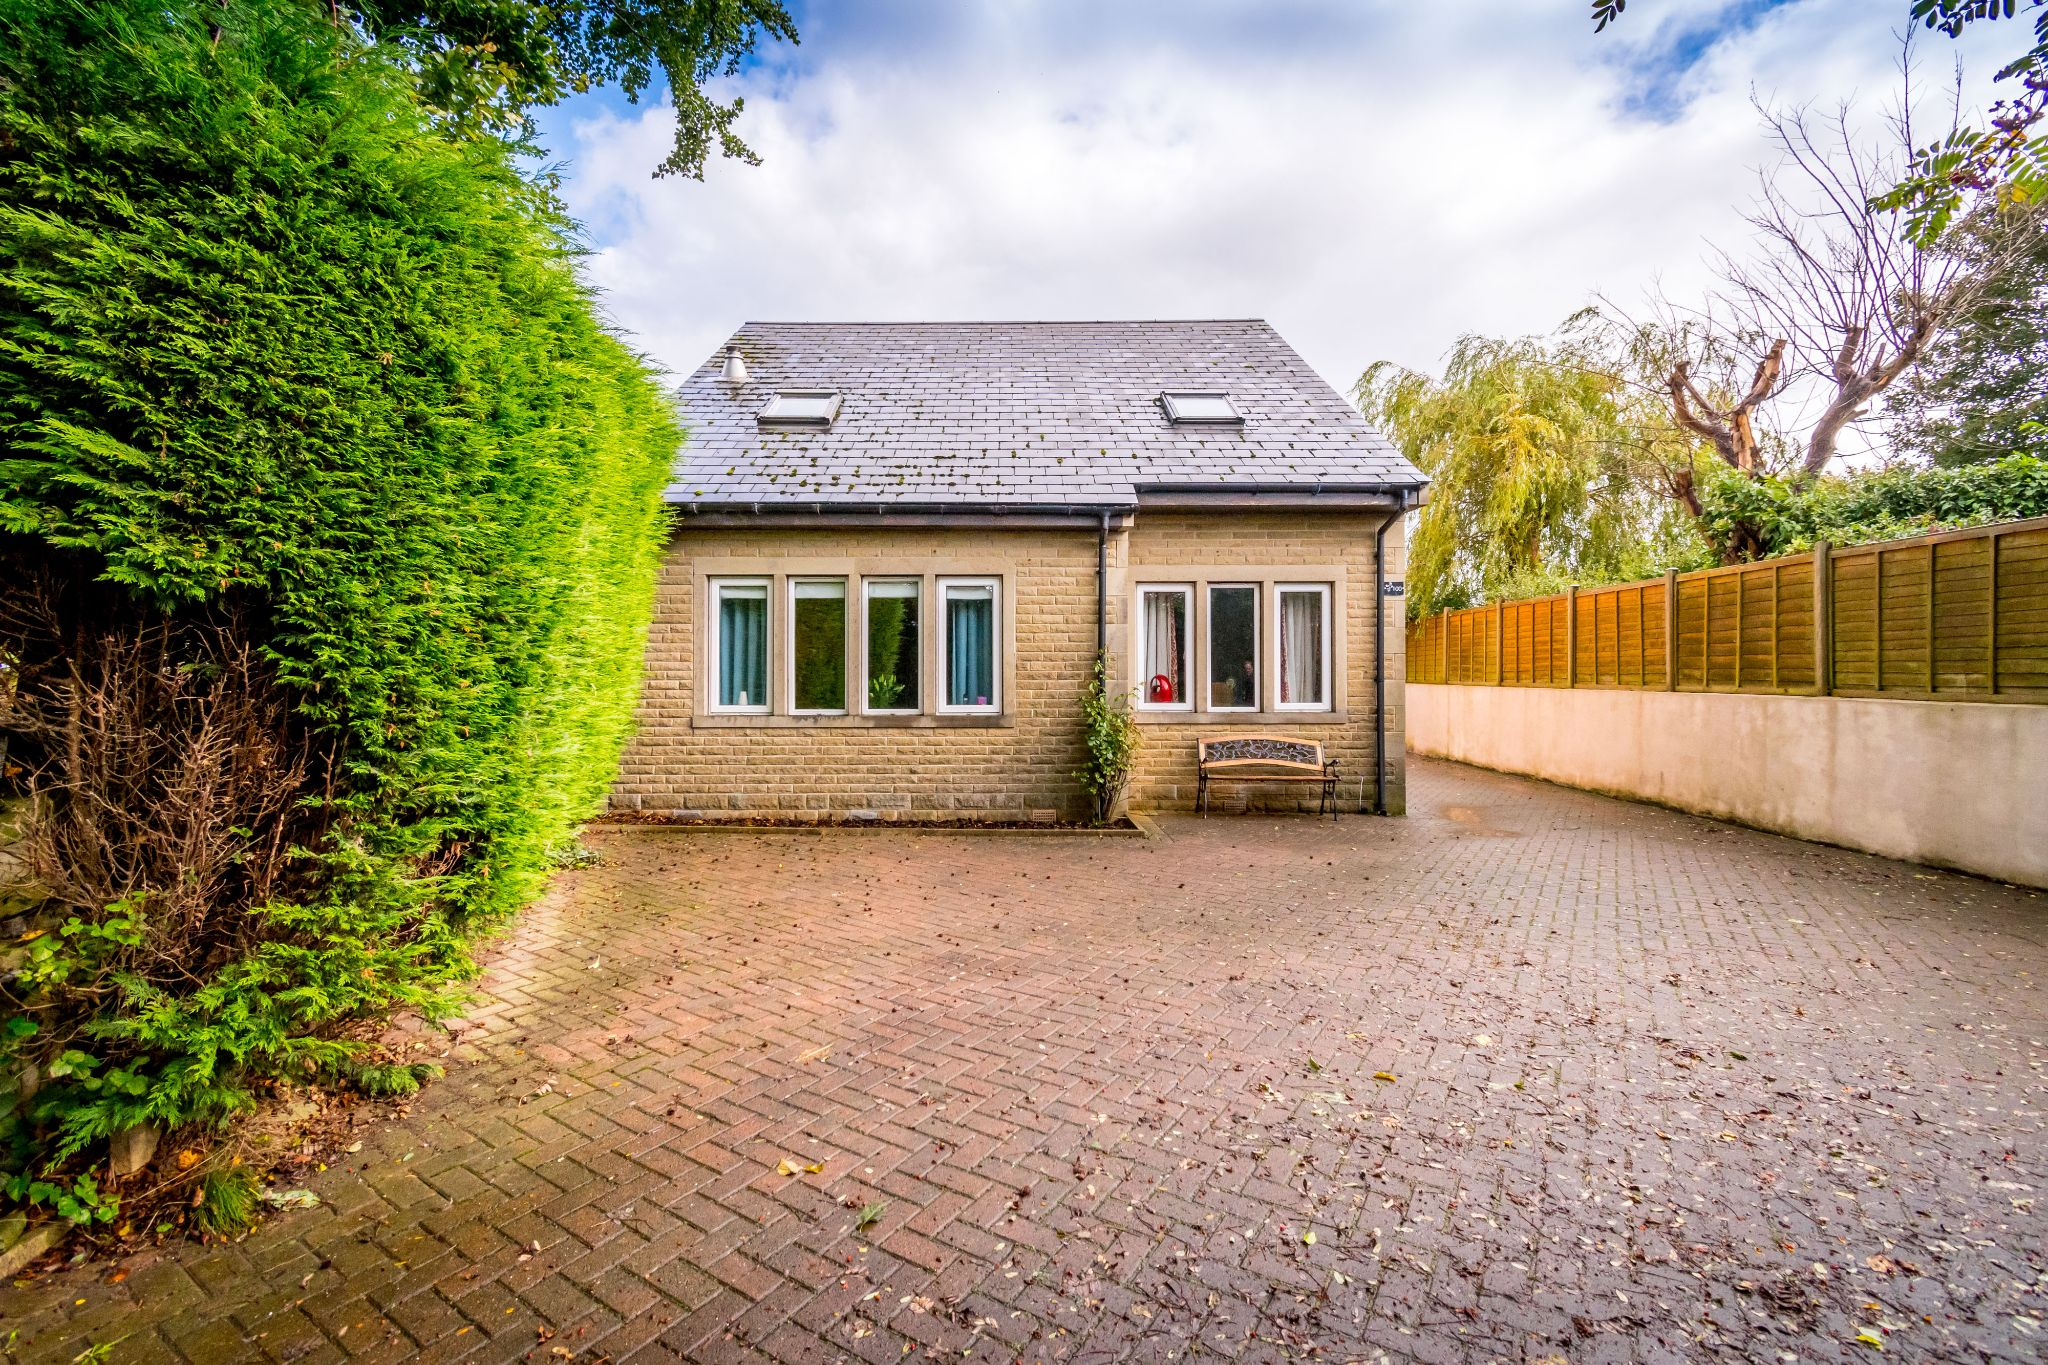 5 bedroom detached house SSTC in Brighouse - Ample parking